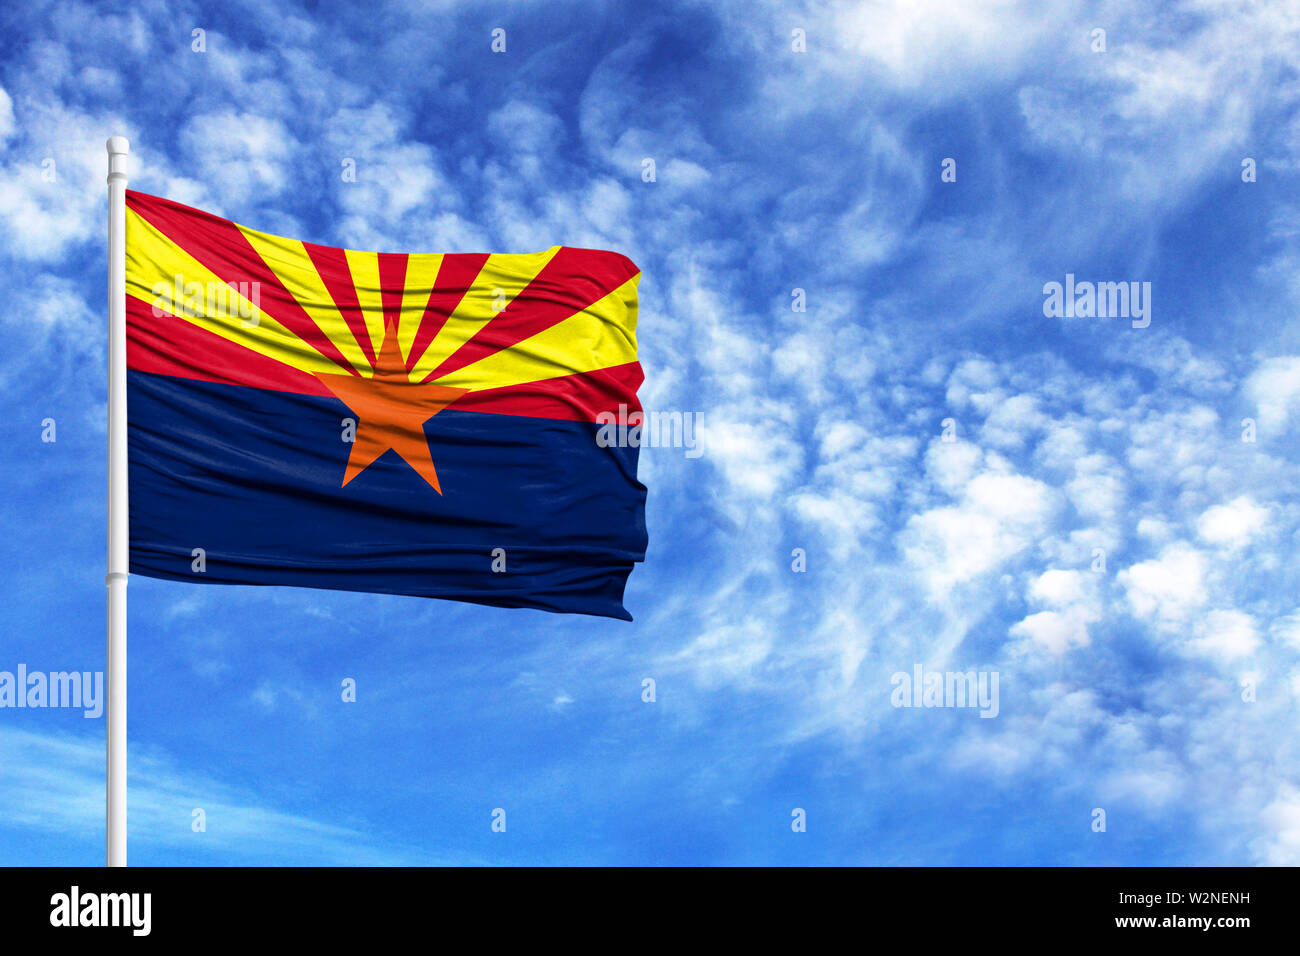 National flag State of Arizona on a flagpole in front of blue sky - Stock Image